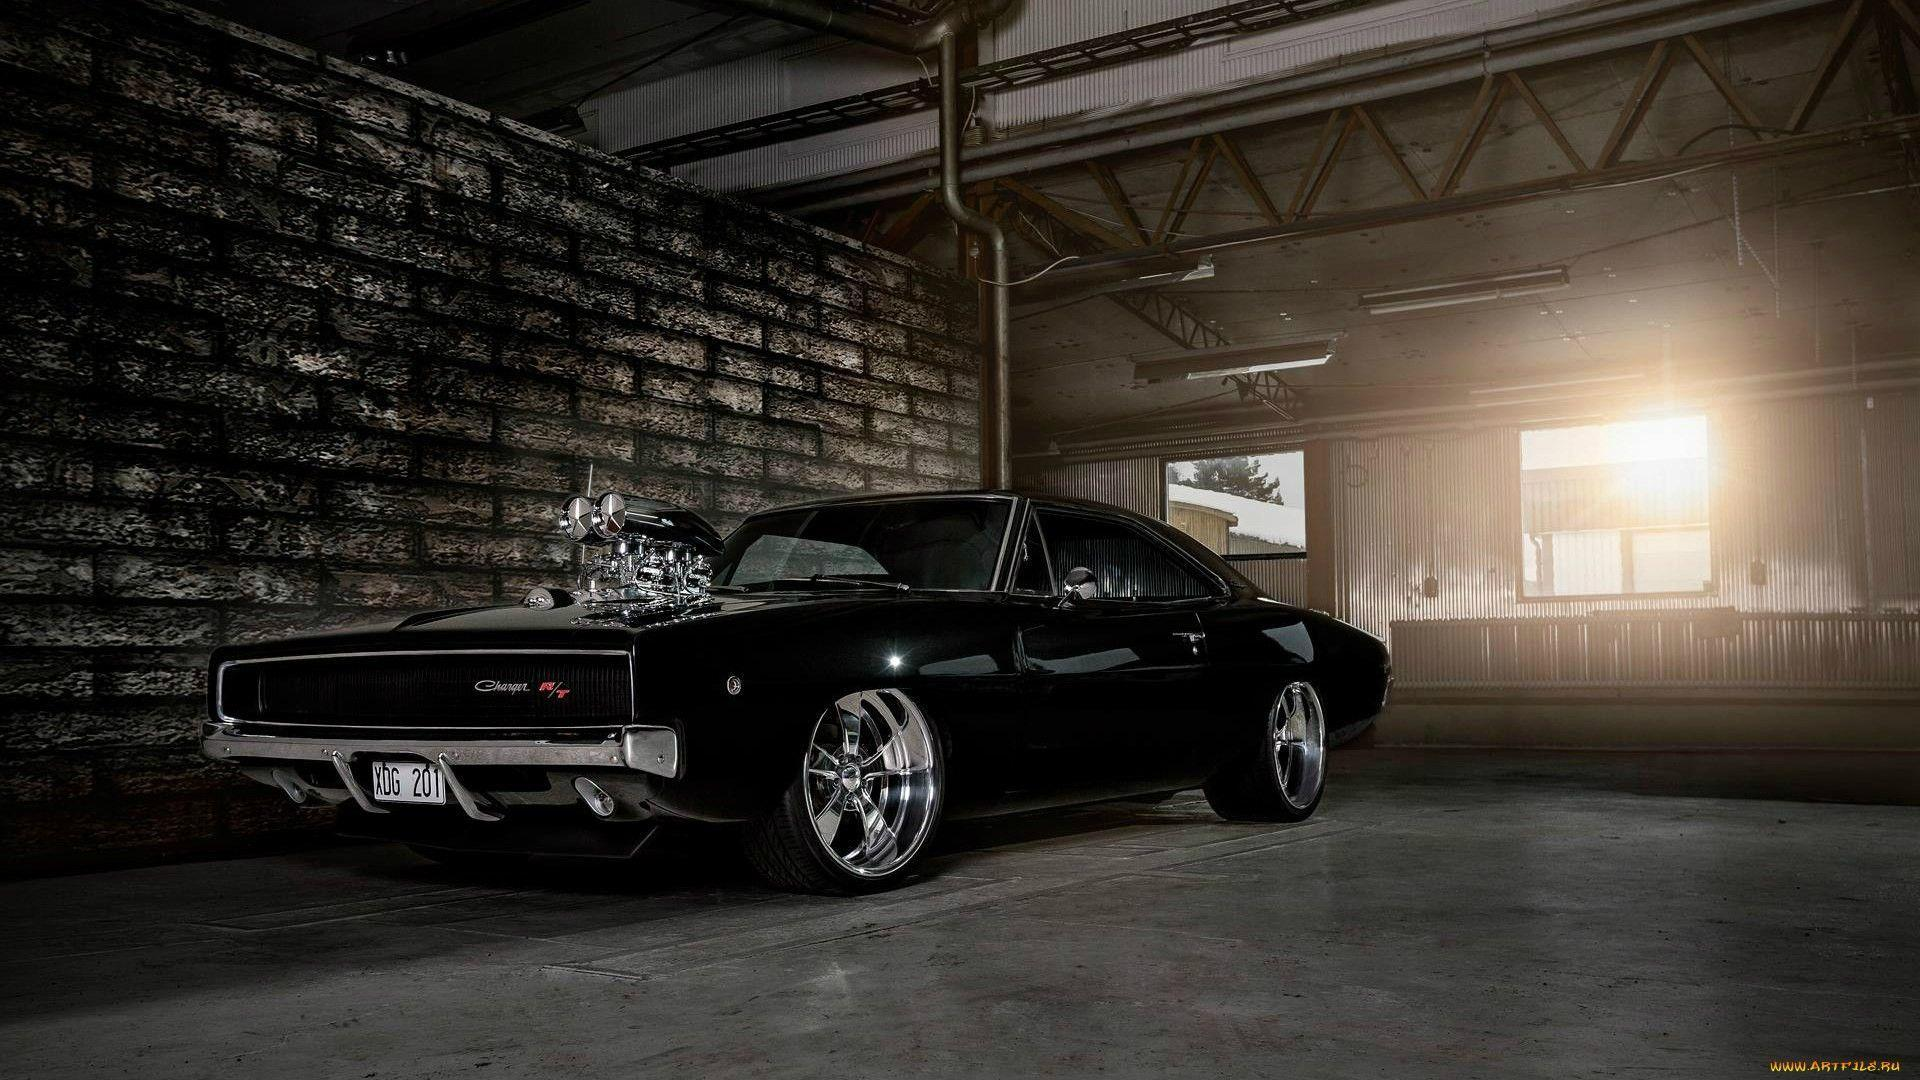 Dodge Charger 1970 Wallpapers Wallpaper Cave